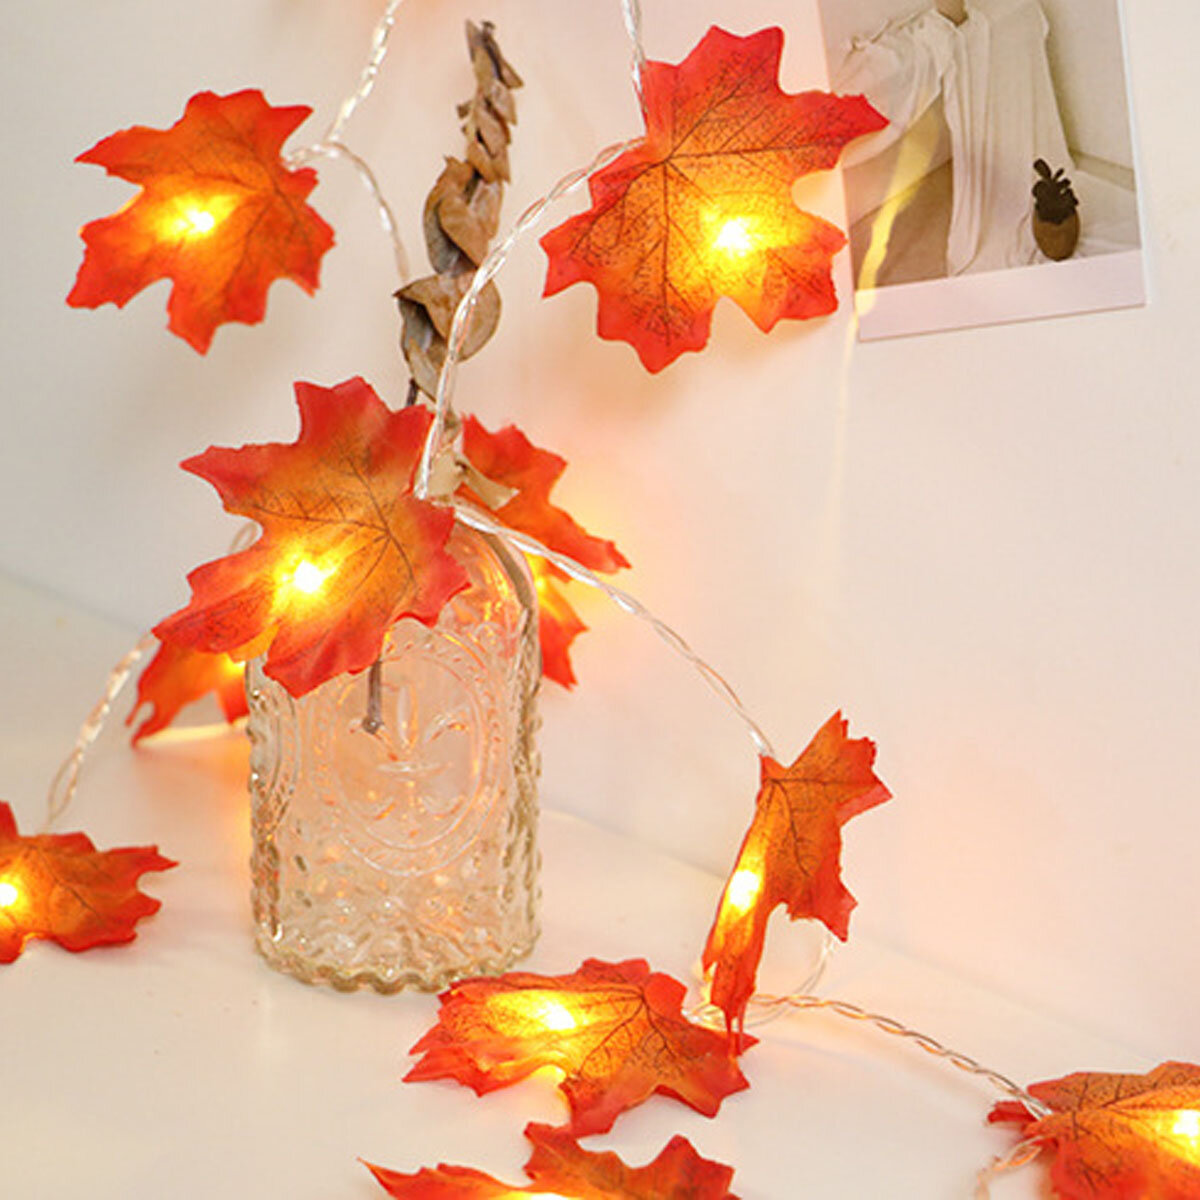 3M/6M 20/30/40LED Maple Leaf String Light Battery Powered Warm White Indoor Party Fairy Lamp Decoration